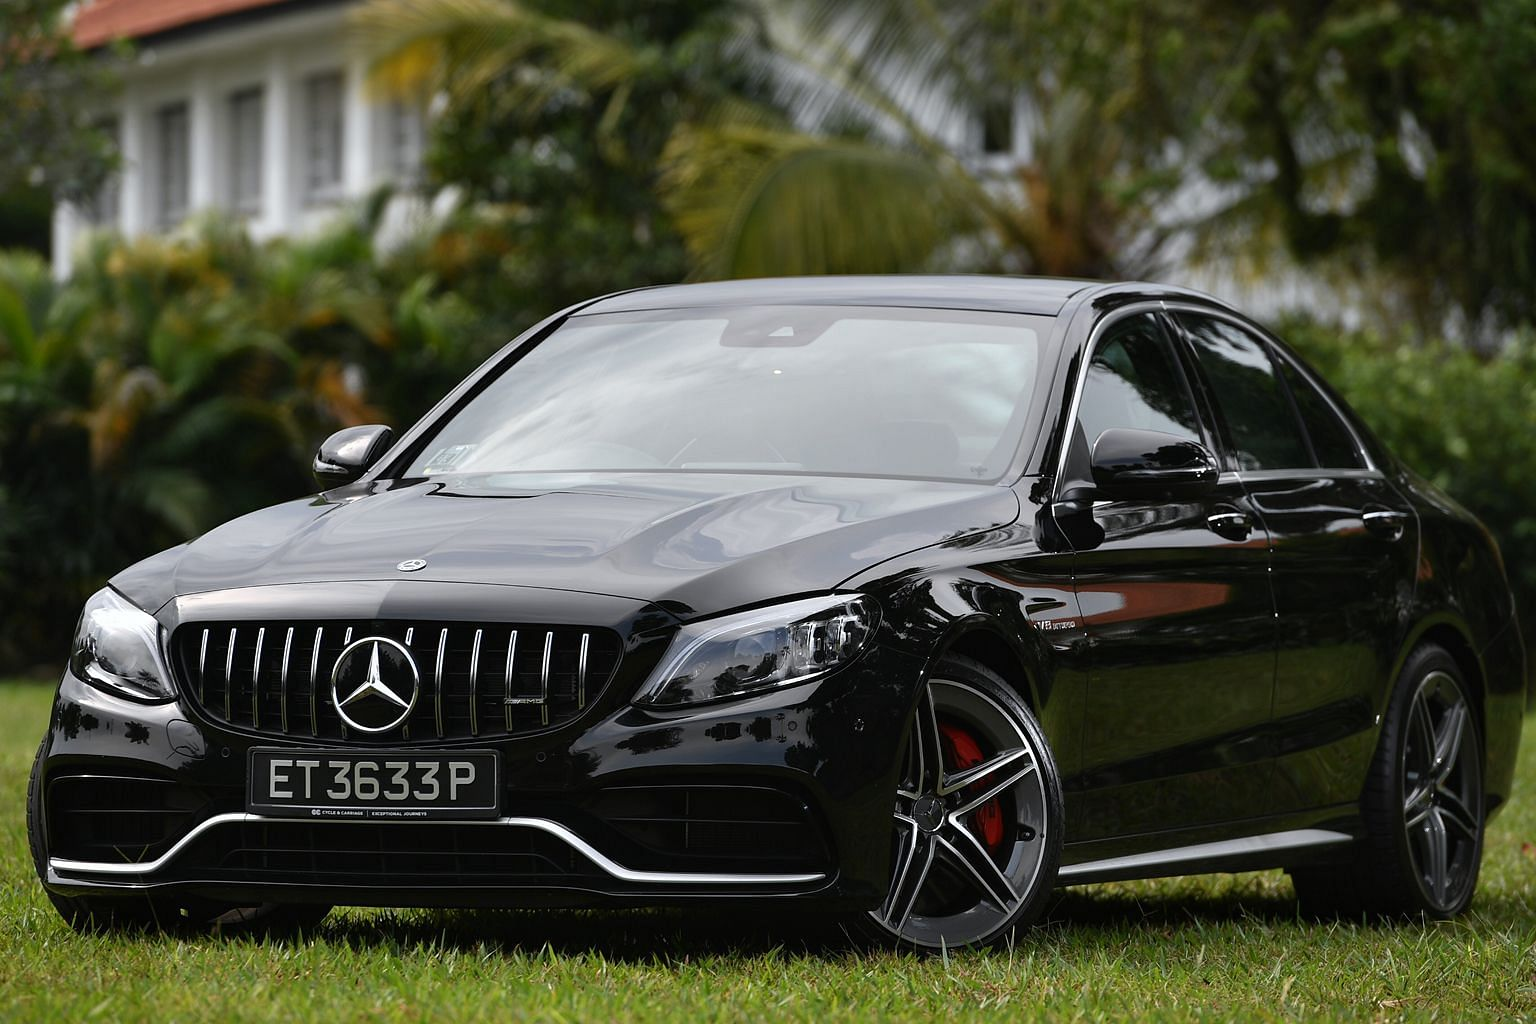 The Mercedes-AMG C63S Saloon has a new suede leather steering wheel with track-inspired functions.